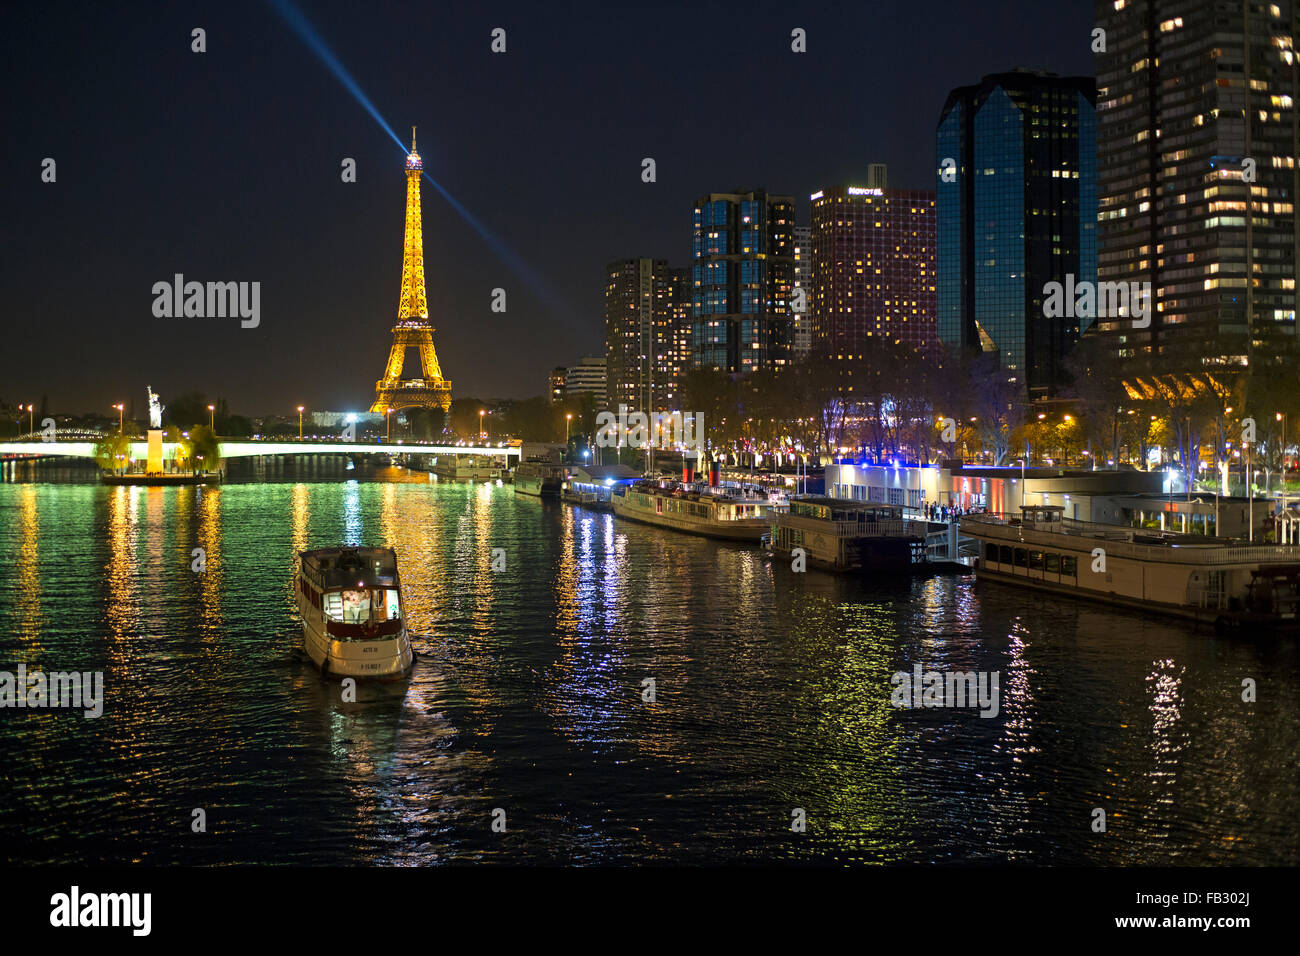 Night view of River Seine with boats and high-rise buildings on the Left Bank, and Eiffel Tower, Paris, France, - Stock Image